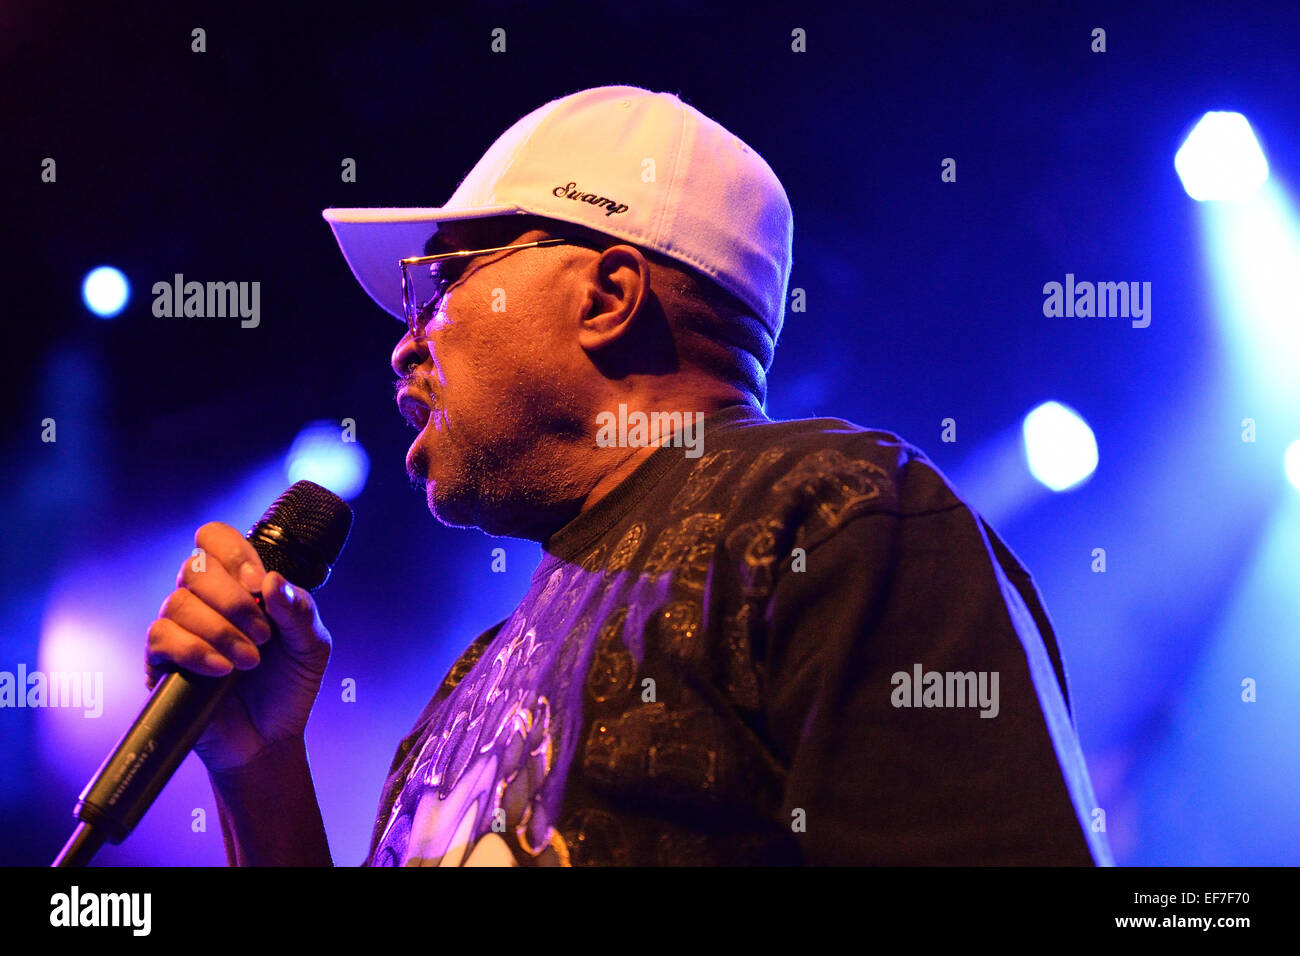 BARCELONA - MAY 15: Swamp Dogg, American soul music band, performance at Barts stage on May 15, 2014 in Barcelona, Stock Photo